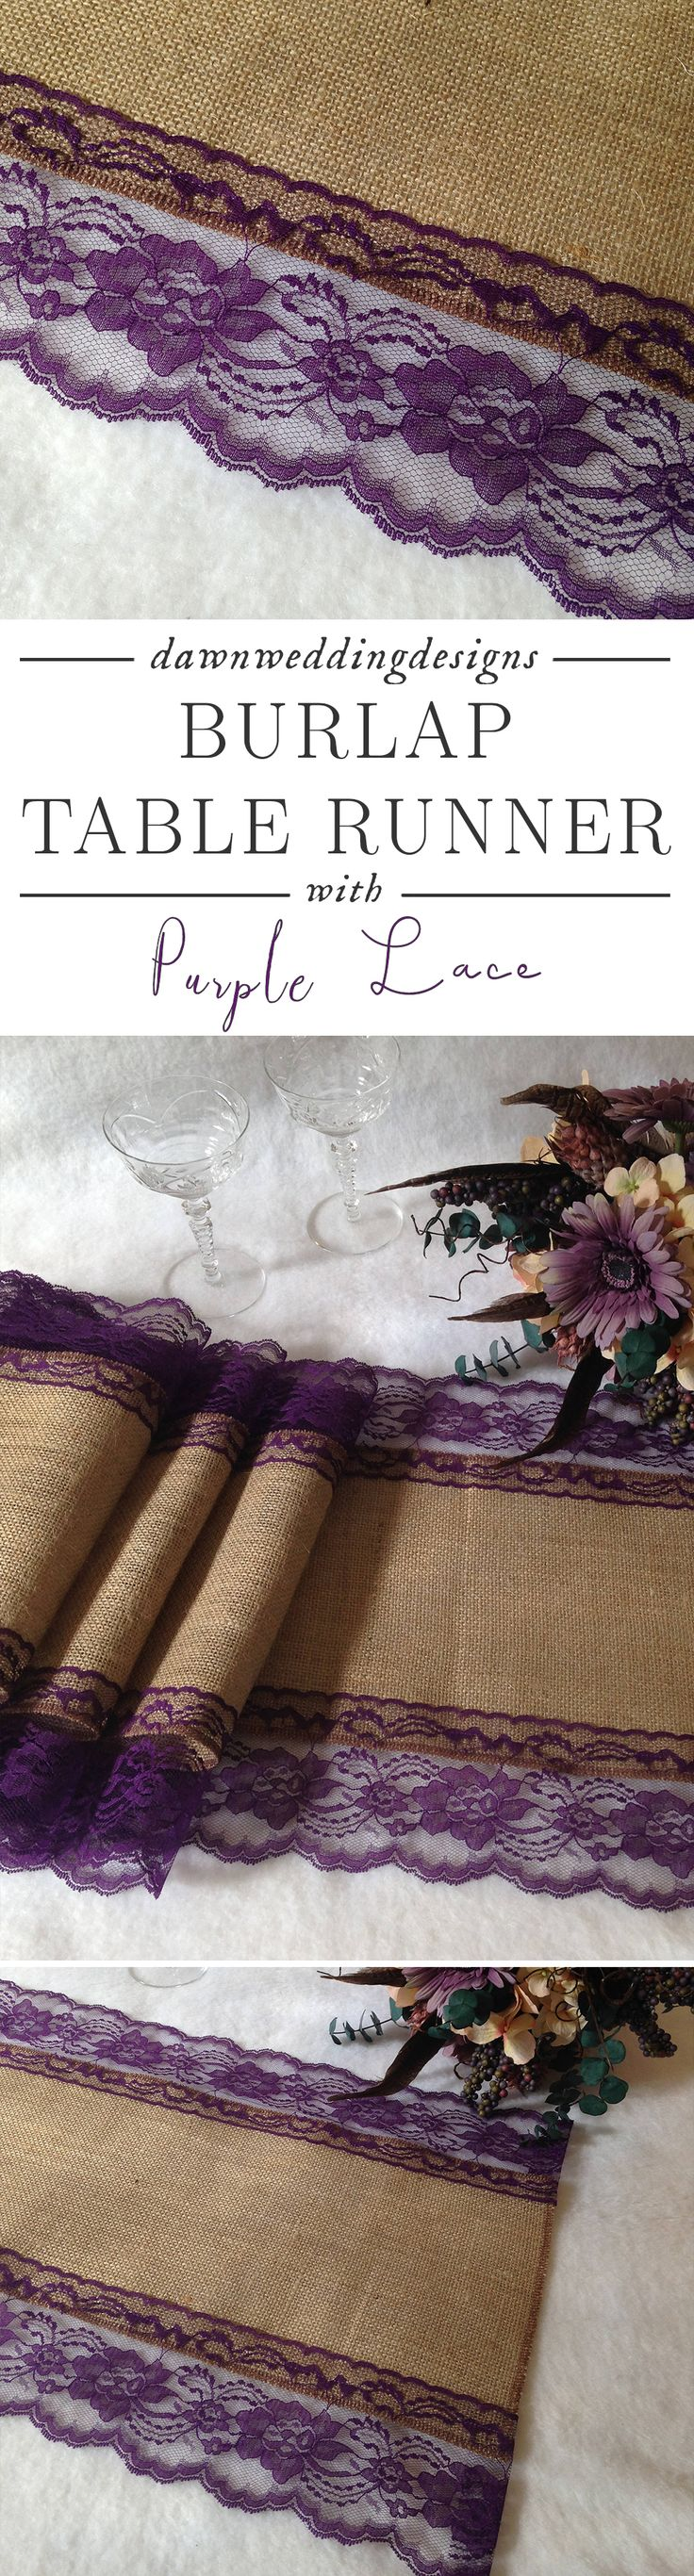 Burlap Table Runner with Dark Purple Lace